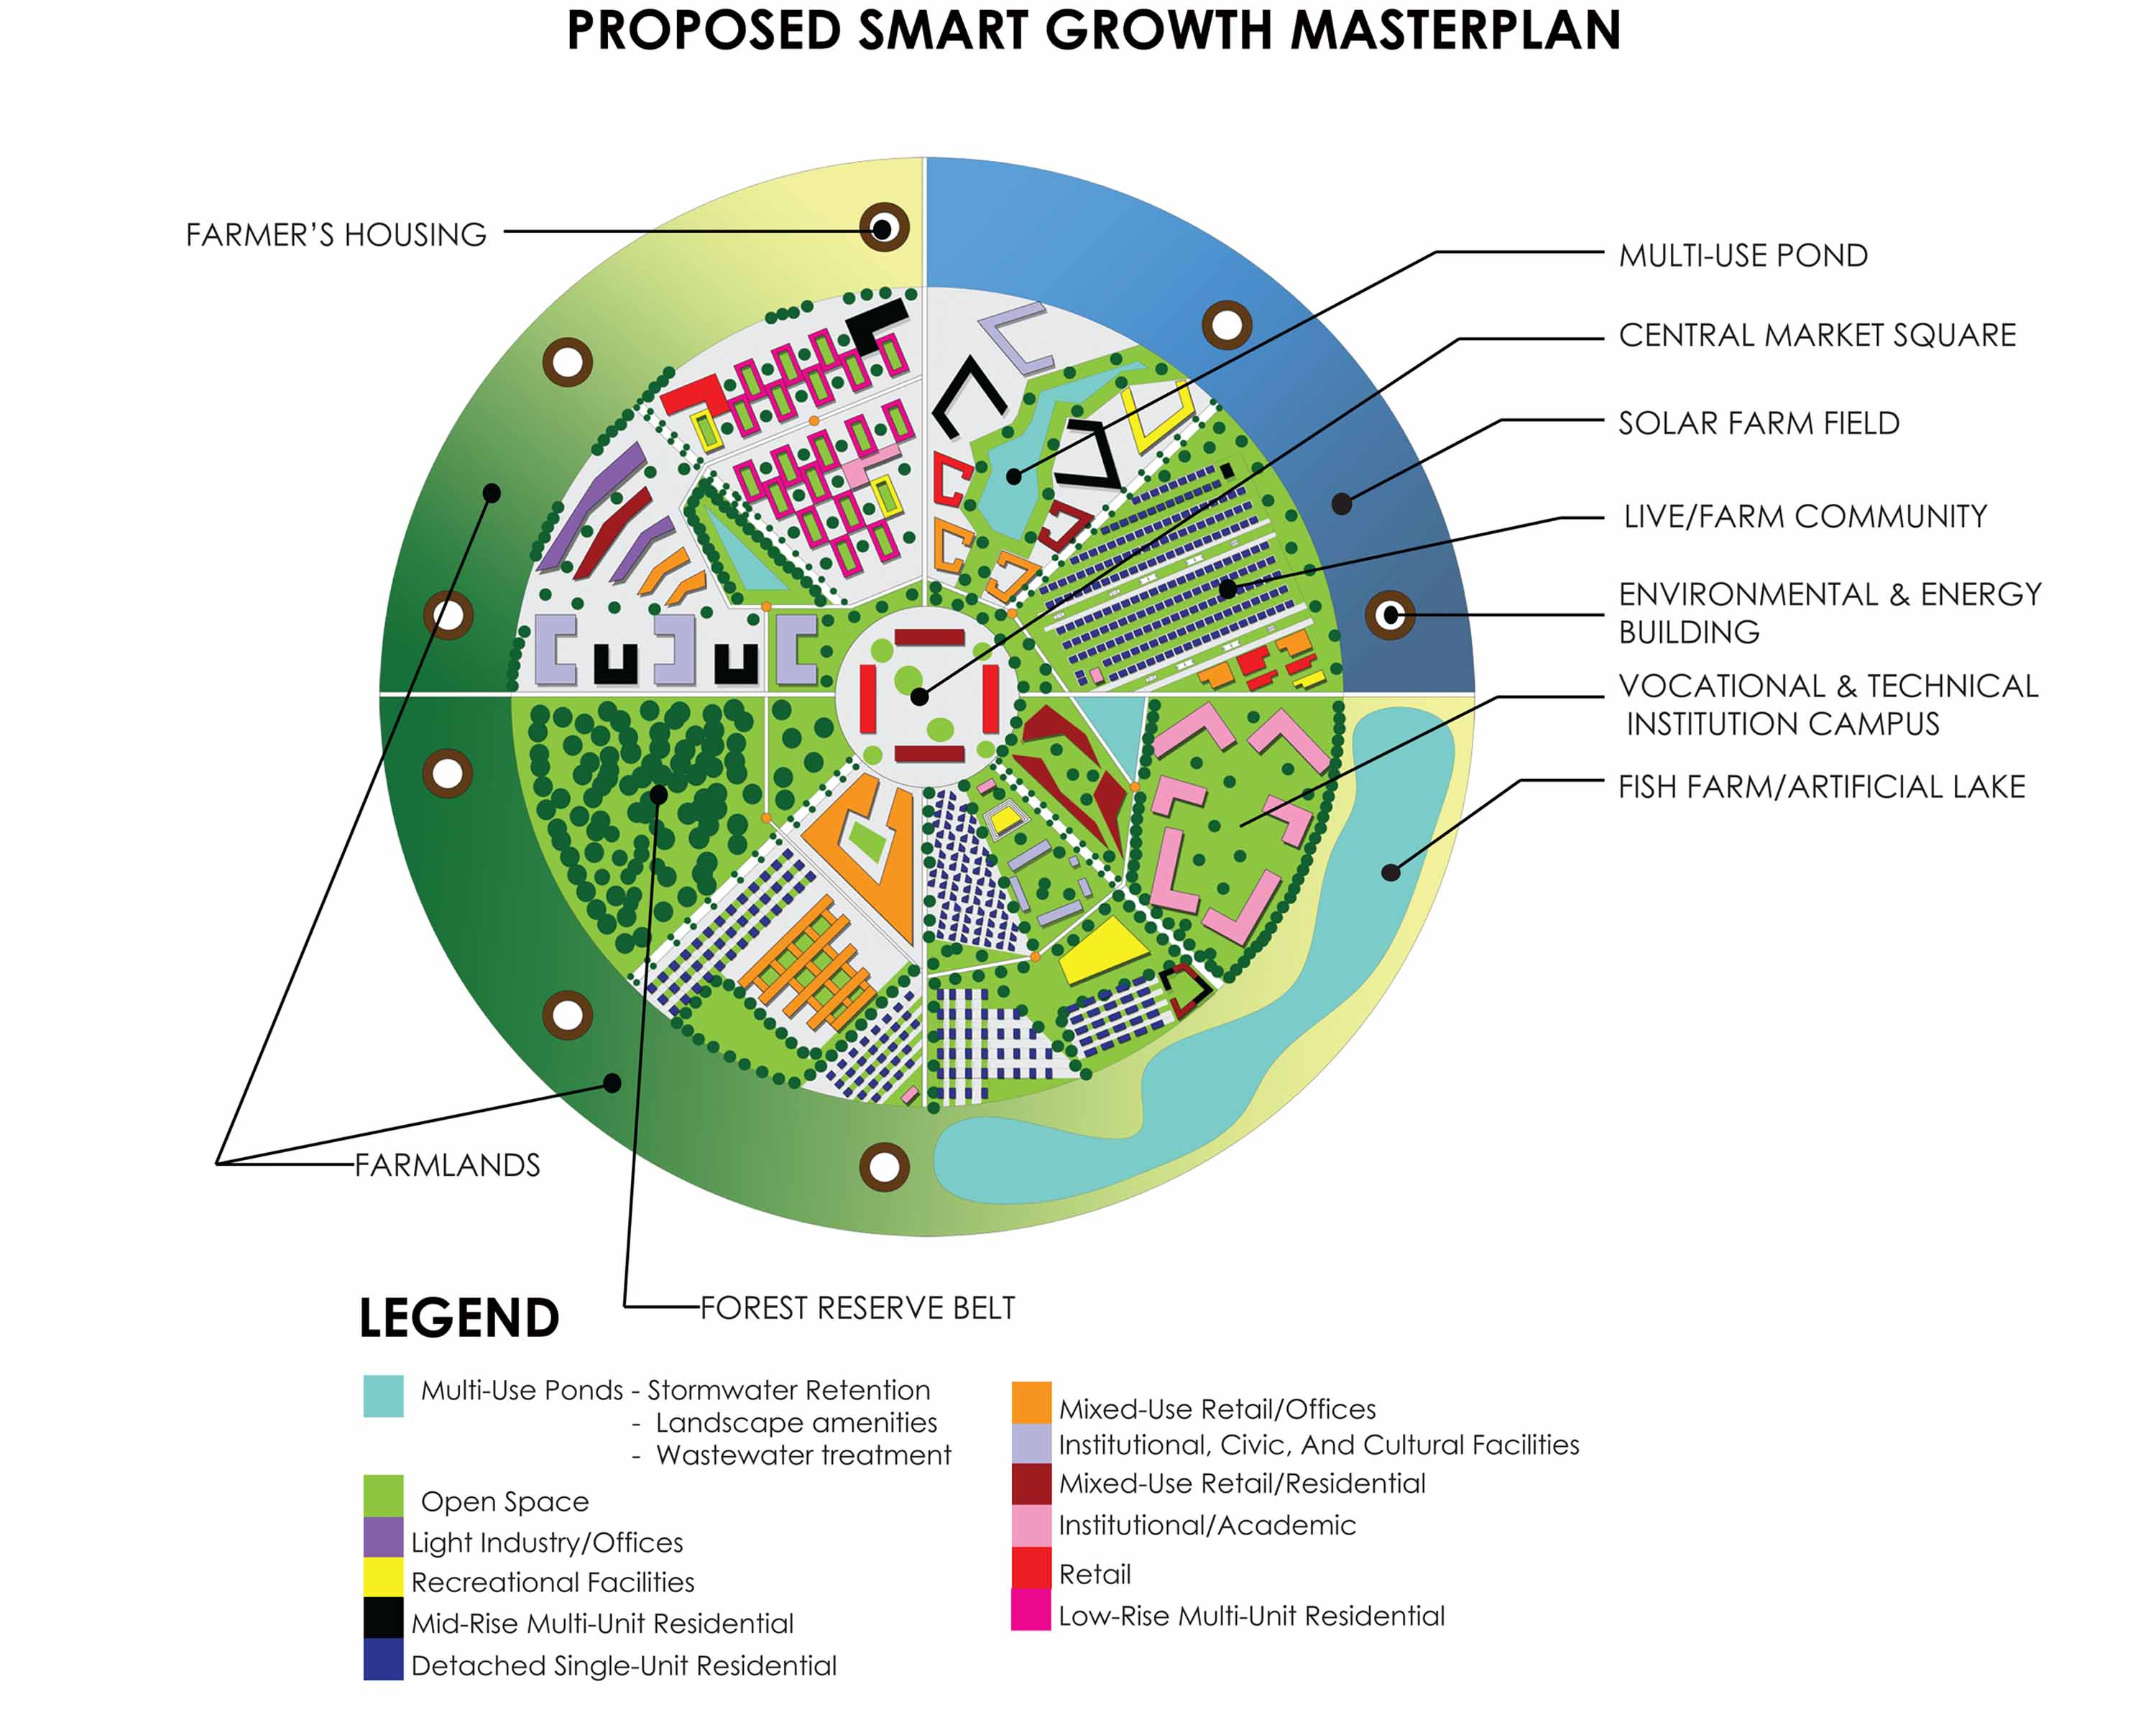 smart growth community Smart growth encourages communities to craft a vision and set standards for development that respect community values of architectural beauty and distinctiveness, as well as expand choices in housing and transportation.